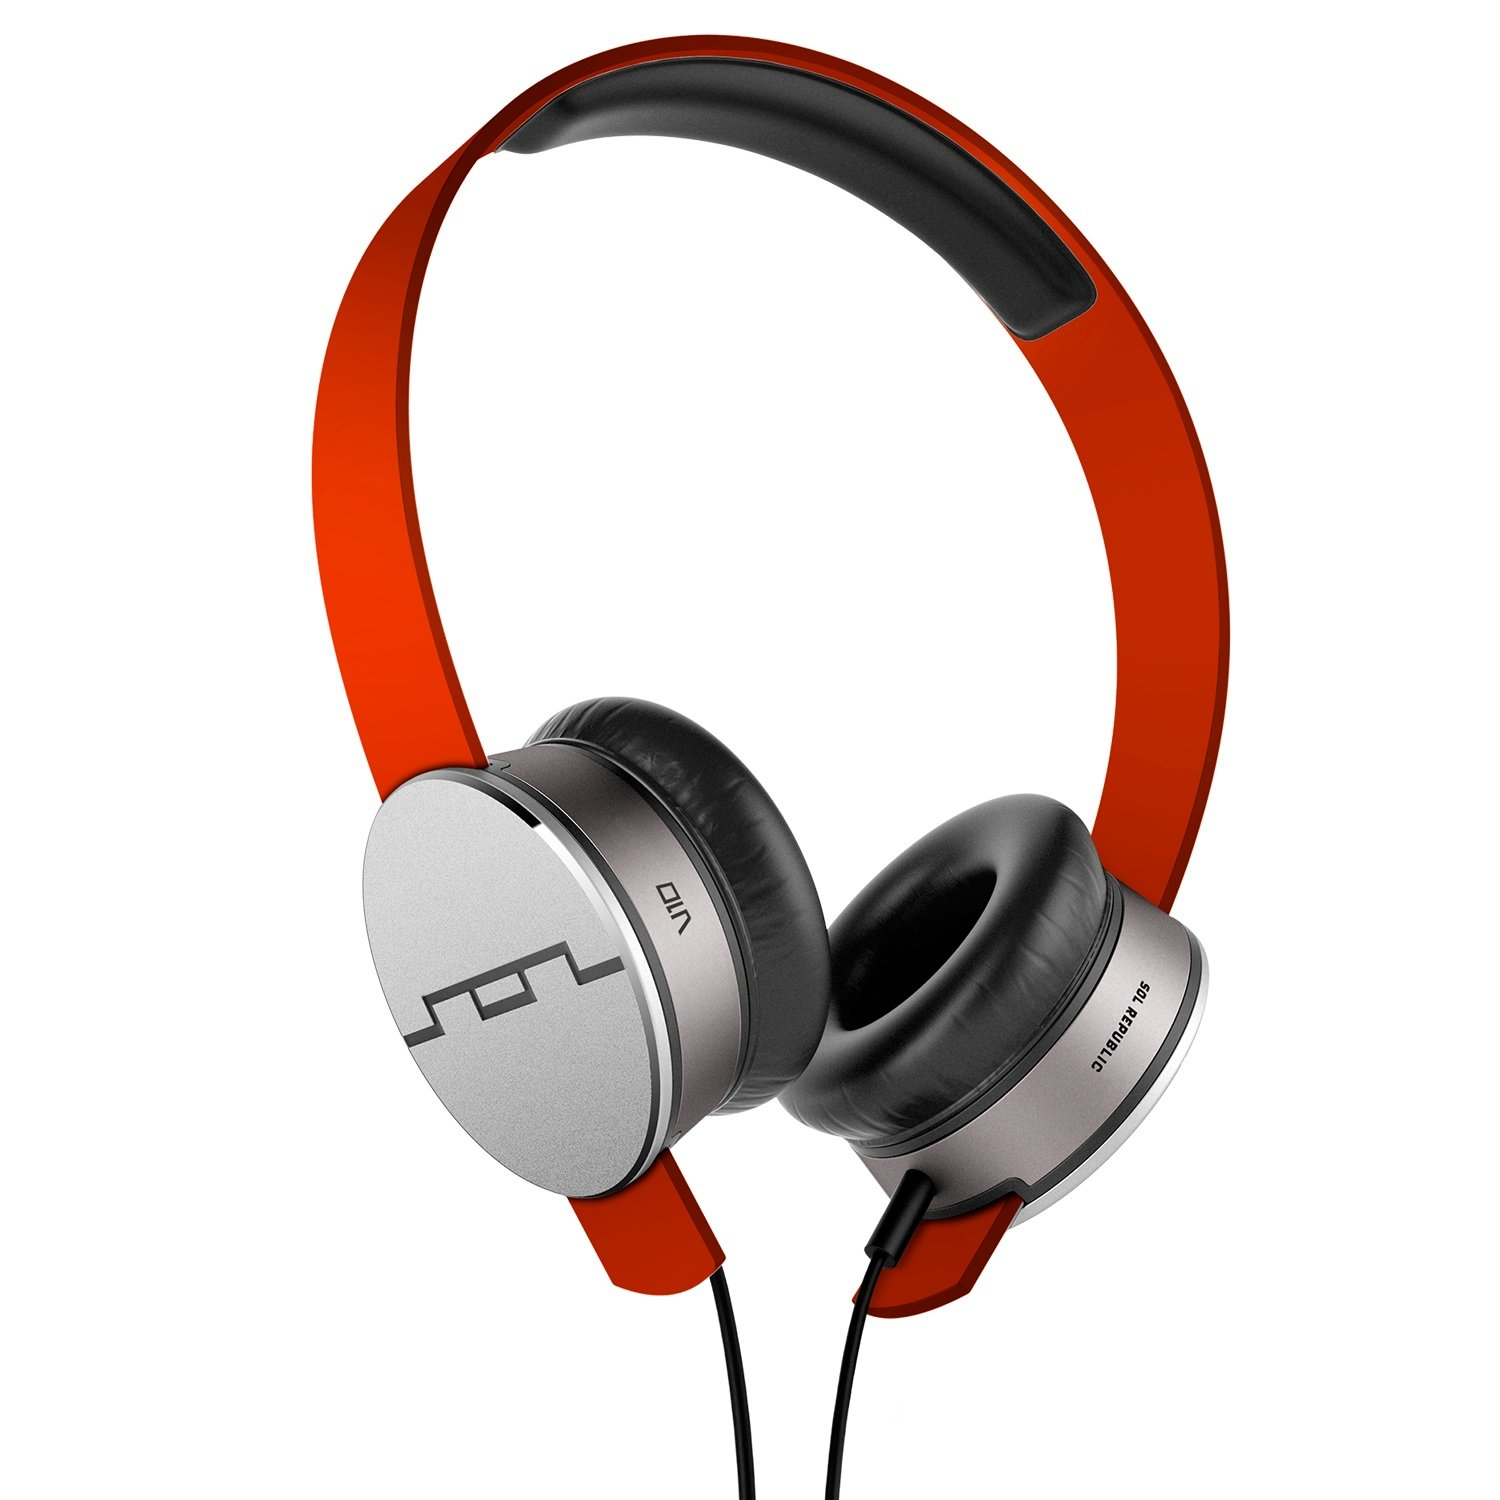 SOL REPUBLIC Tracks HD On-Ear Headphones - Fluoro Red (1241-23) наушники полноразмерные sol republic master tracks gunmetal 1601 30